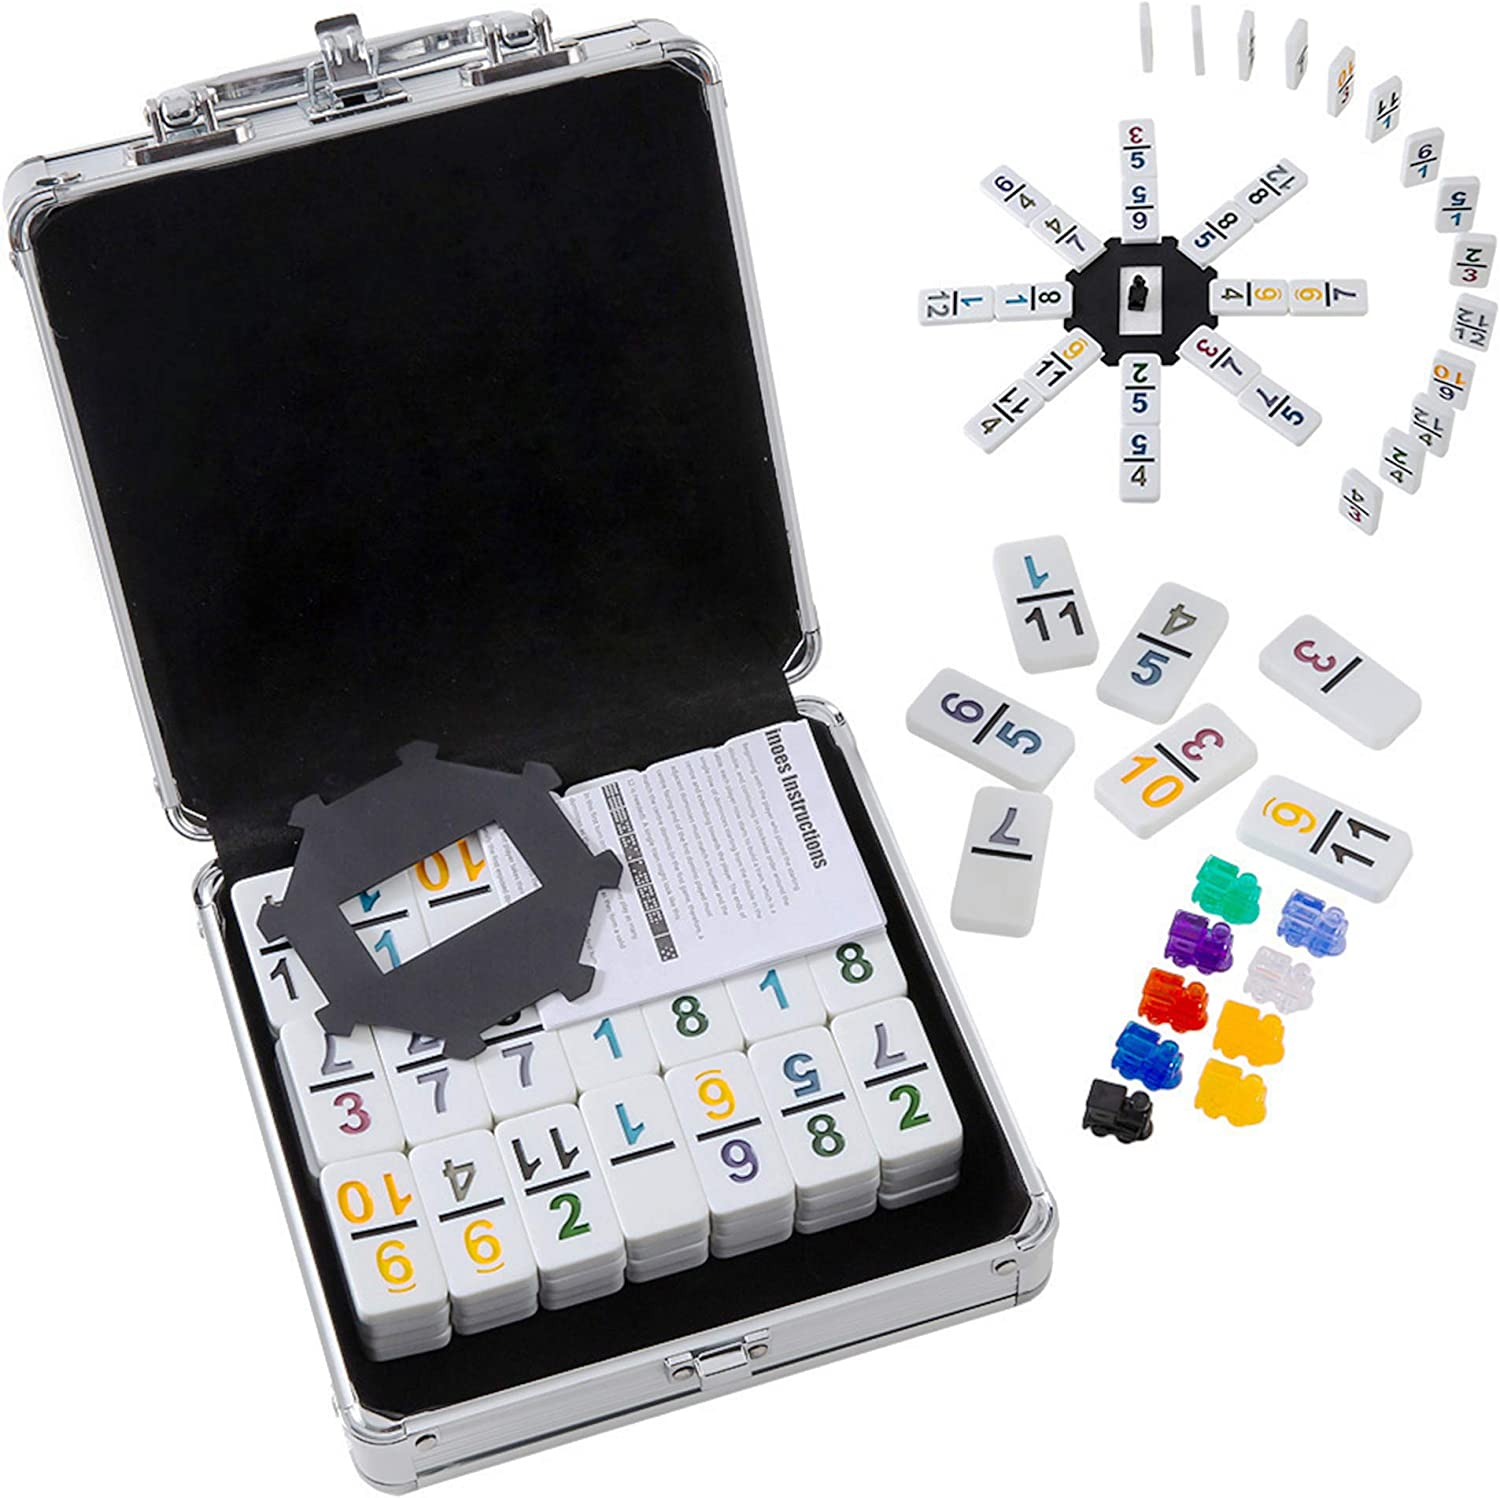 Dominoes Set Double 12 for Travel Tocebe Mexican Train Dominoes Mexican Train with Aluminum Case for Kids and Families